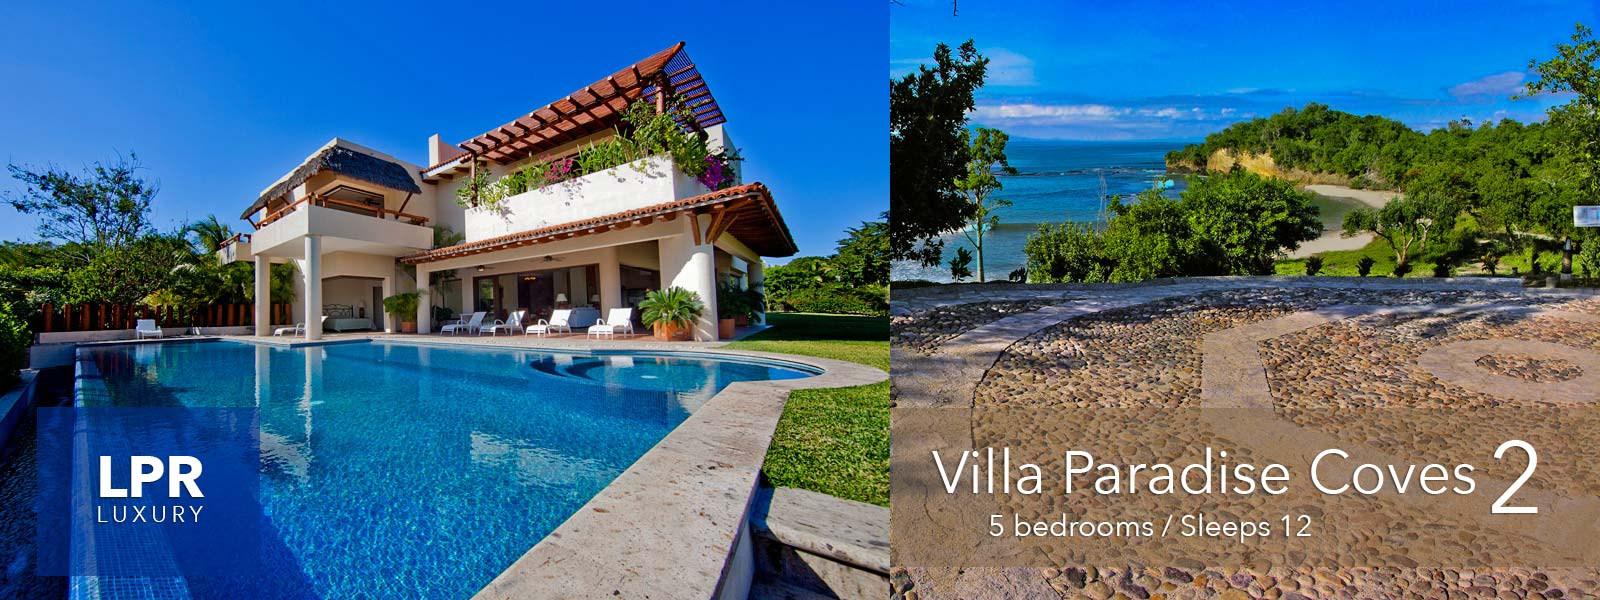 Villa Paradise Coves 2 - Luxury Punta de Mita Real Estate and Vacation Rental Villa